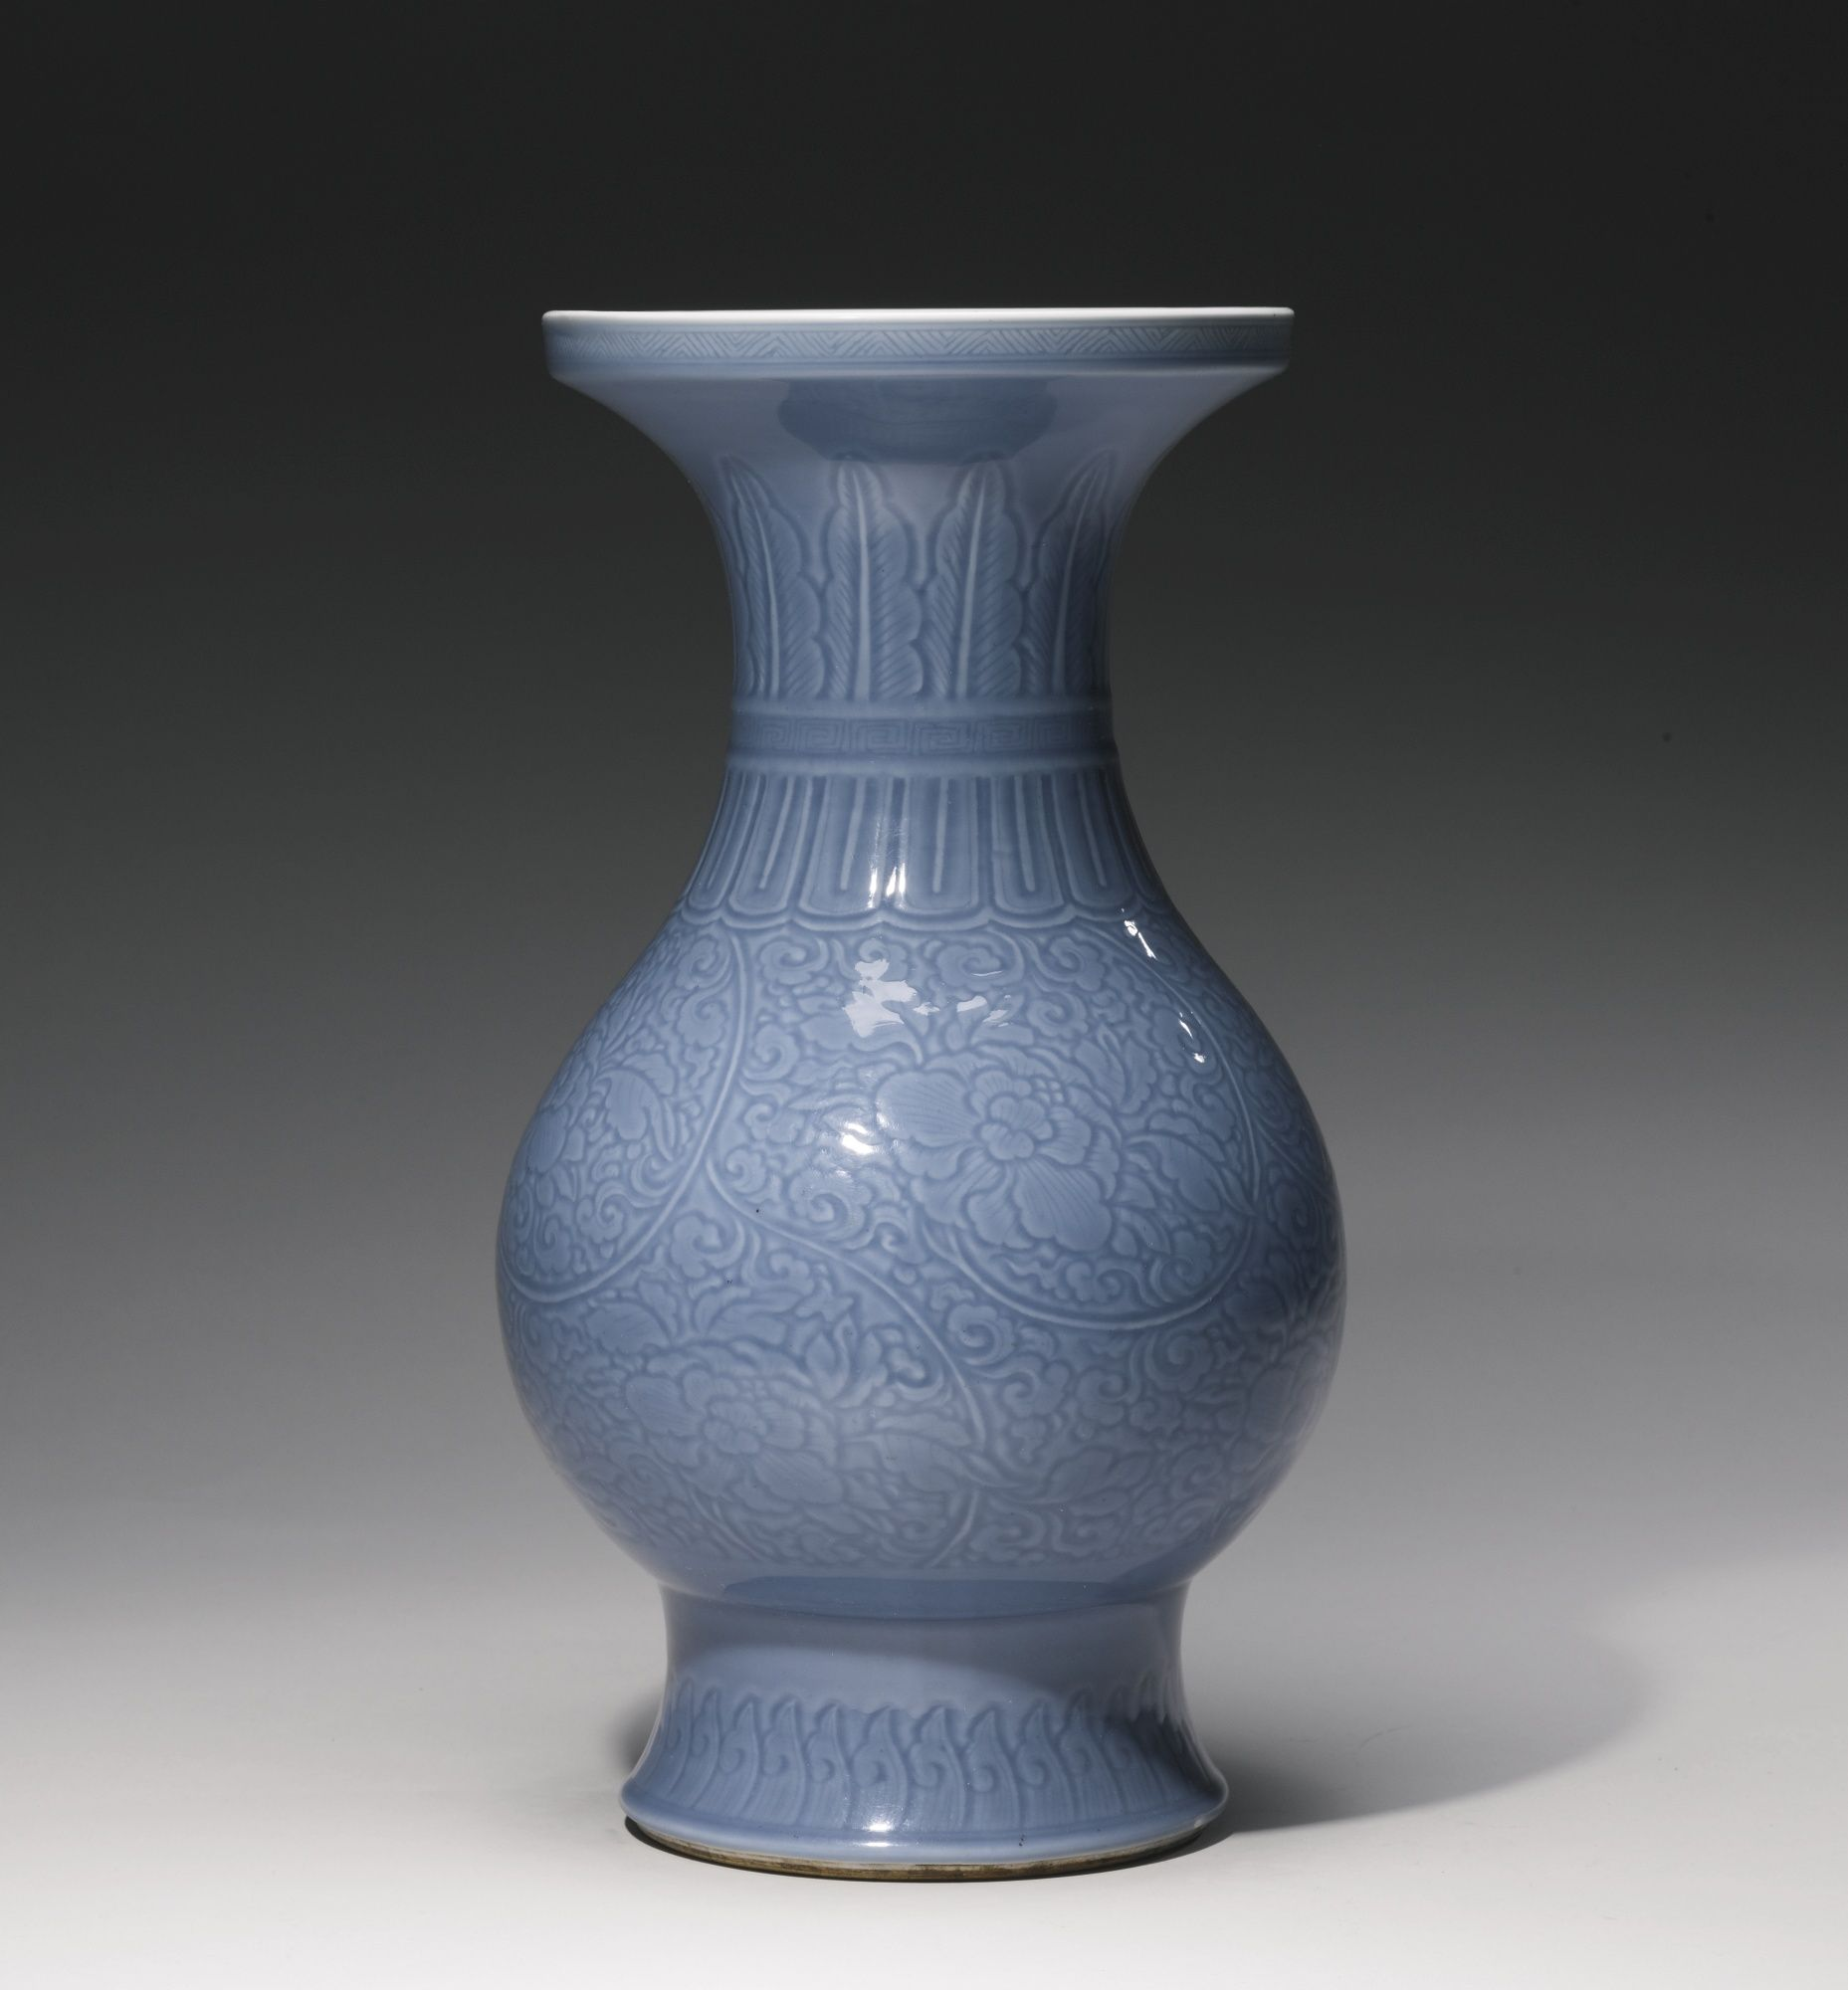 A CARVED BLUE-GLAZED 'PEONY' VASE  QING DYNASTY, KANGXI PERIOD the baluster body rising from a short spreading foot to a tall trumpet neck, carved around the exterior with peony scrolls between lotus, ruyi and stiff leaf bands, covered overall with a pale lavender-blue glaze, the interior and base glazed white, apocryphal six-character Chenghua mark in underglaze blue  Height 15 1/8  in., 38.5 cm